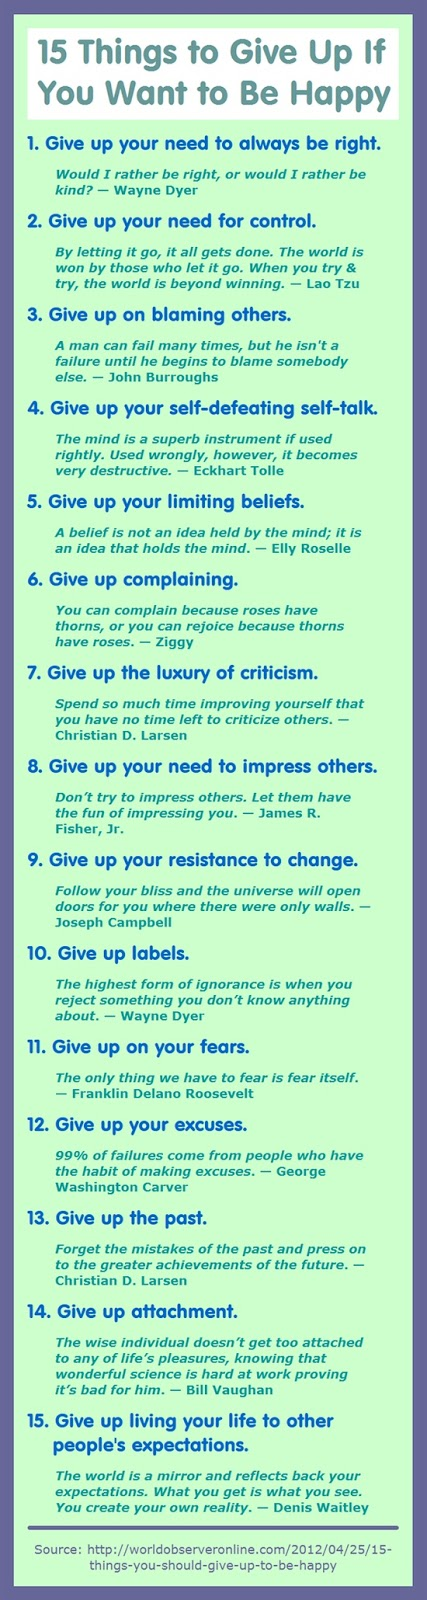 15 things to give up if you want to be happy - QUOTES and ...